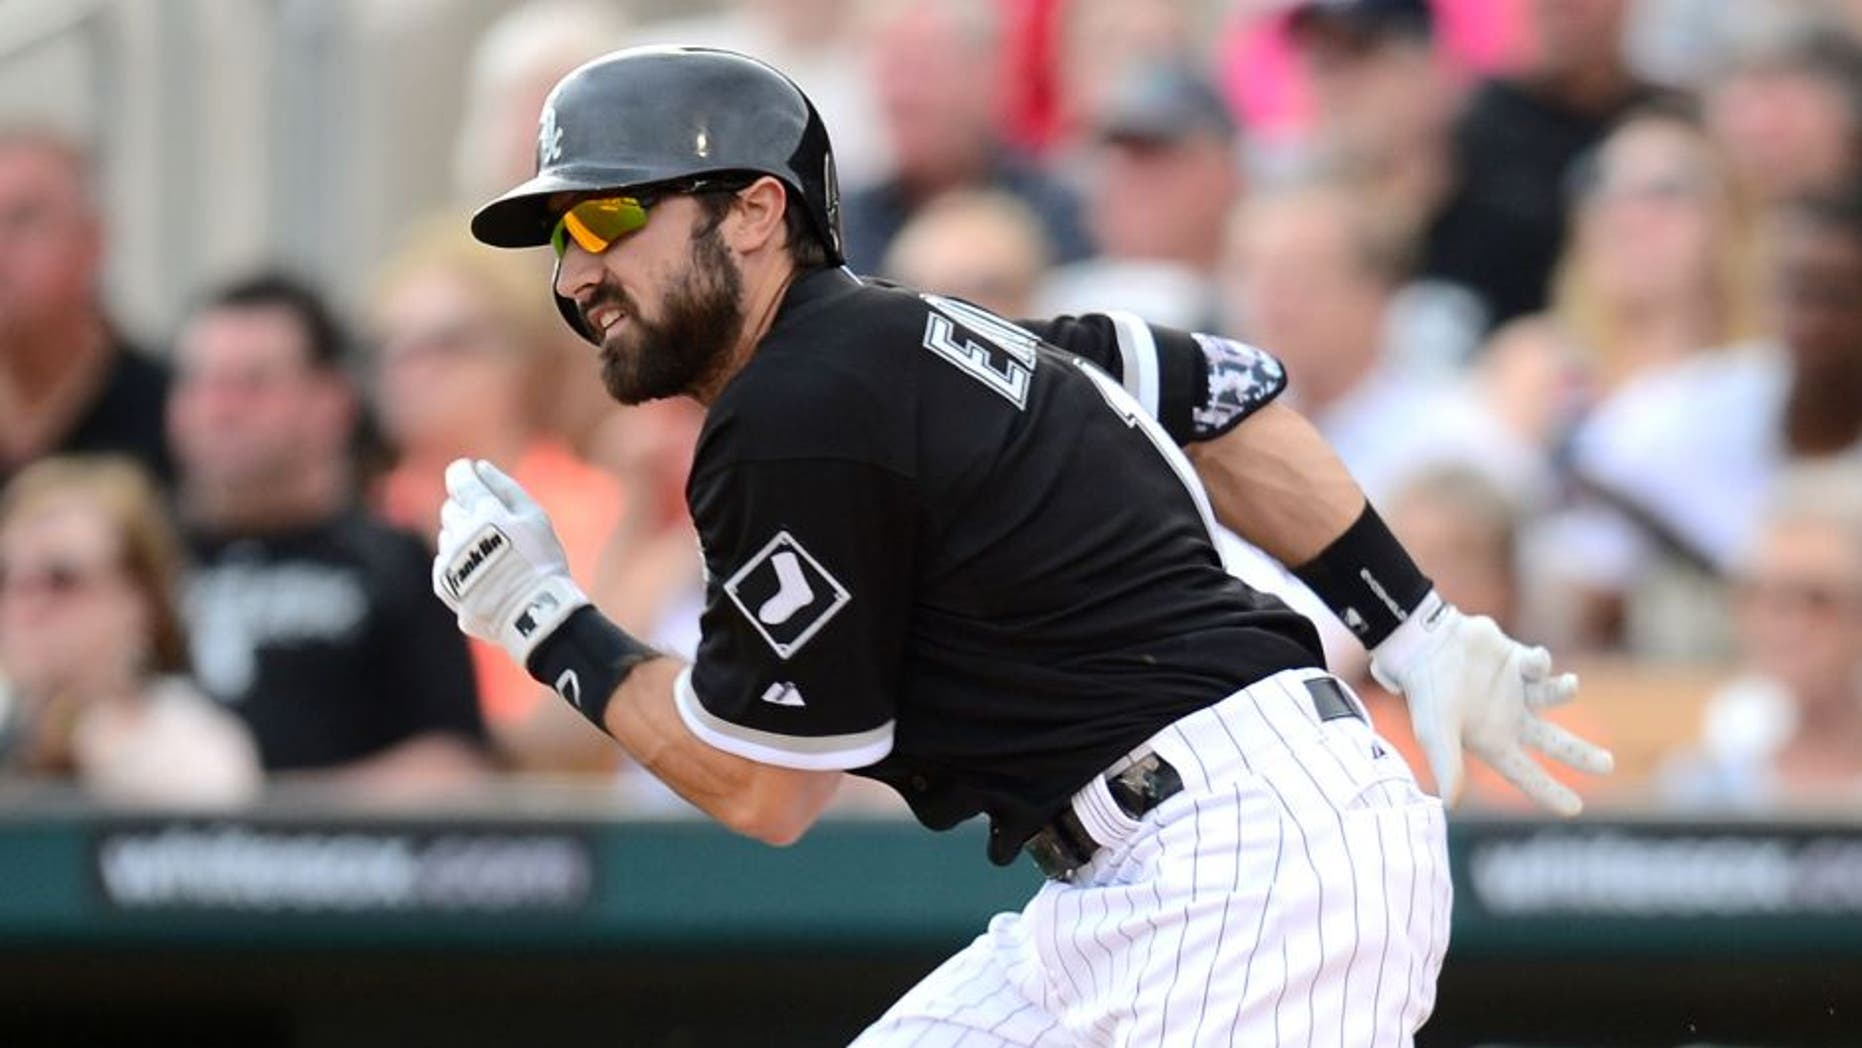 Mar 12, 2015; Phoenix, AZ, USA; Chicago White Sox center fielder Adam Eaton (1) runs to first base against the San Francisco Giants at Camelback Ranch. Mandatory Credit: Joe Camporeale-USA TODAY Sports